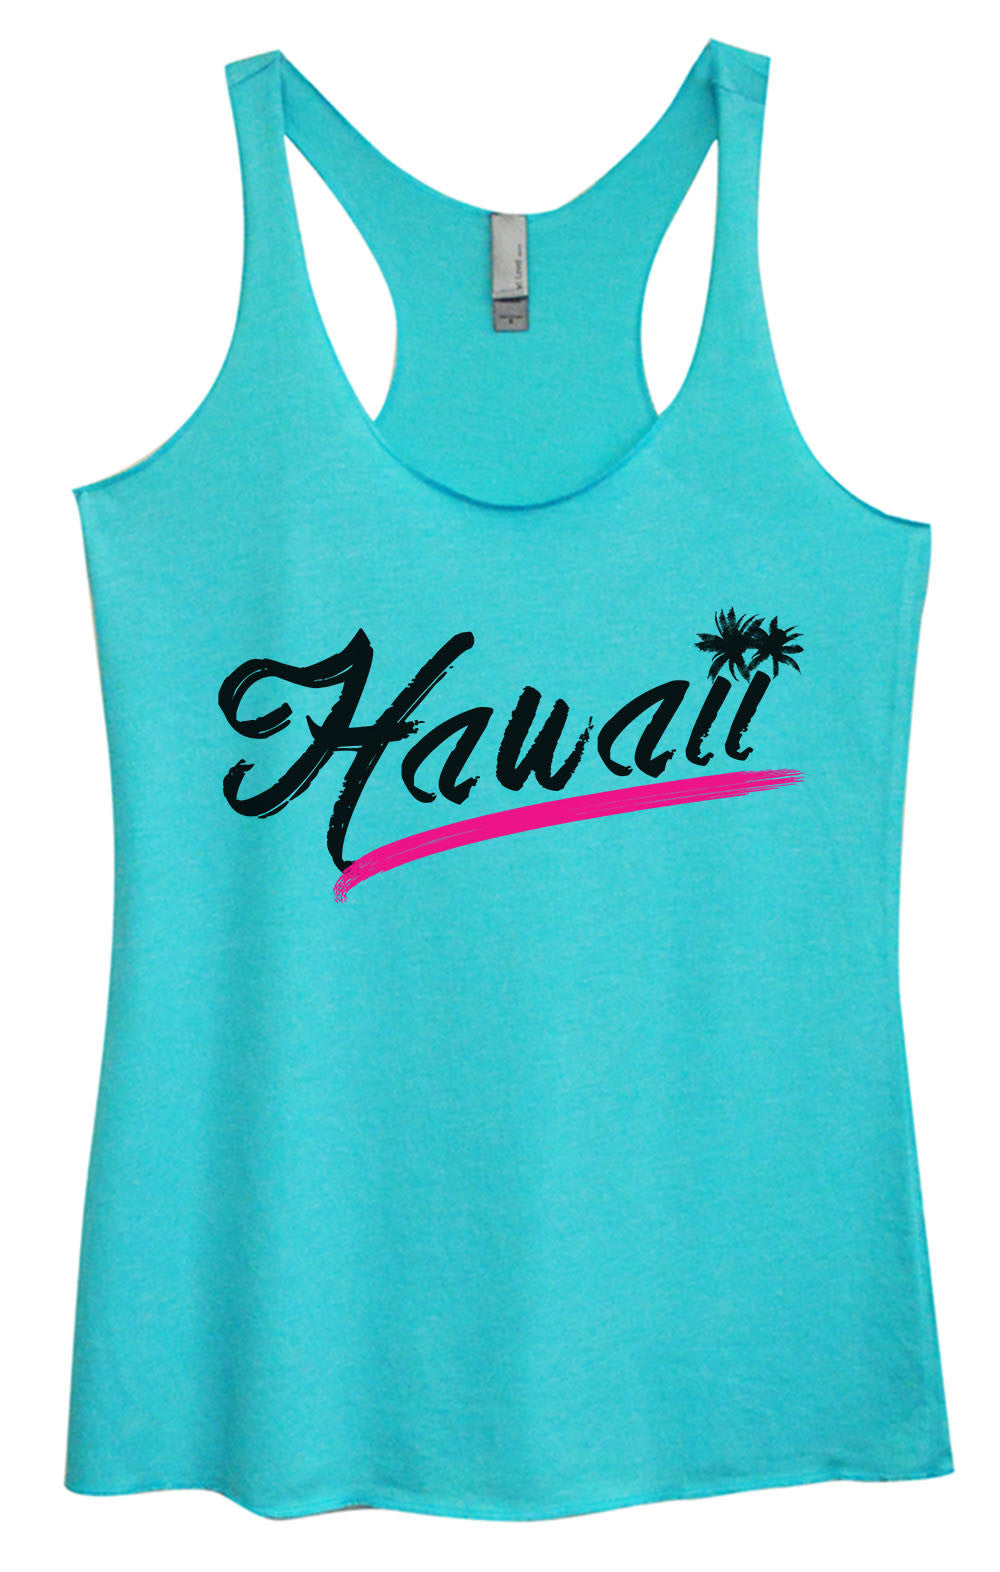 Womens Fashion Triblend Tank Top - Hawaii - Tri-1392 - Funny Shirts Tank Tops Burnouts and Triblends  - 4